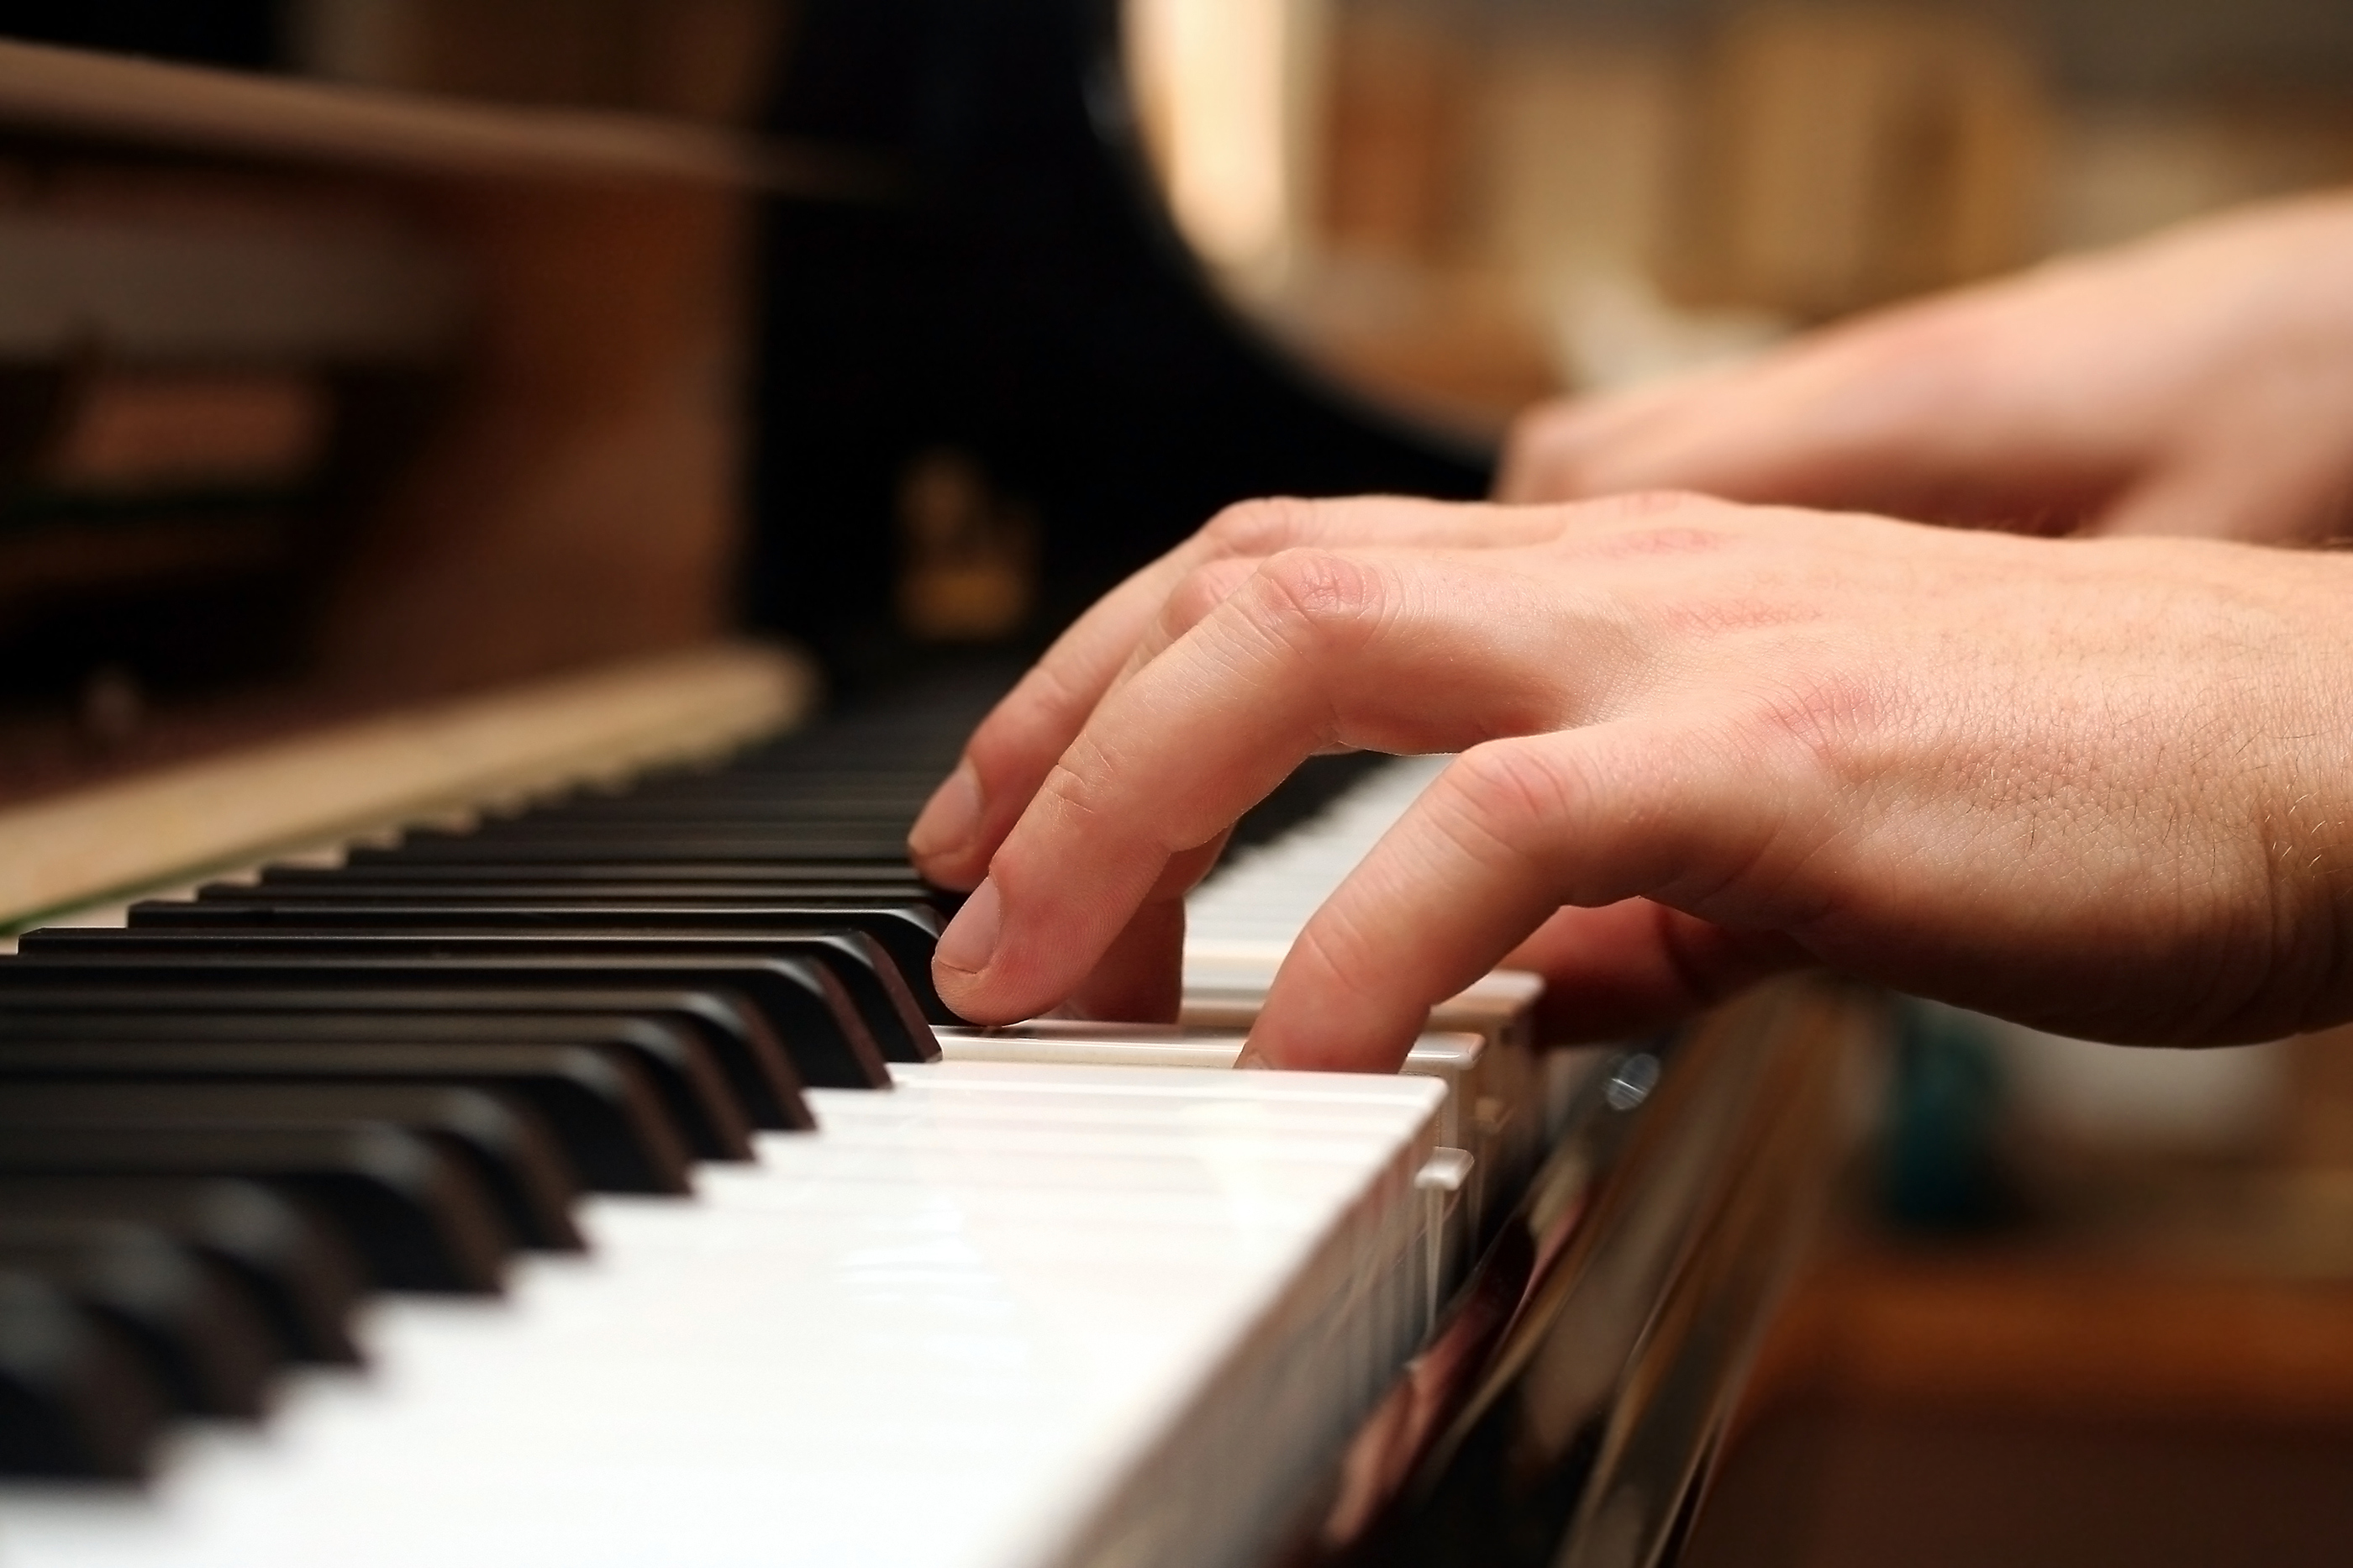 piano-keyboard-playing-hands-and-fingerjpg